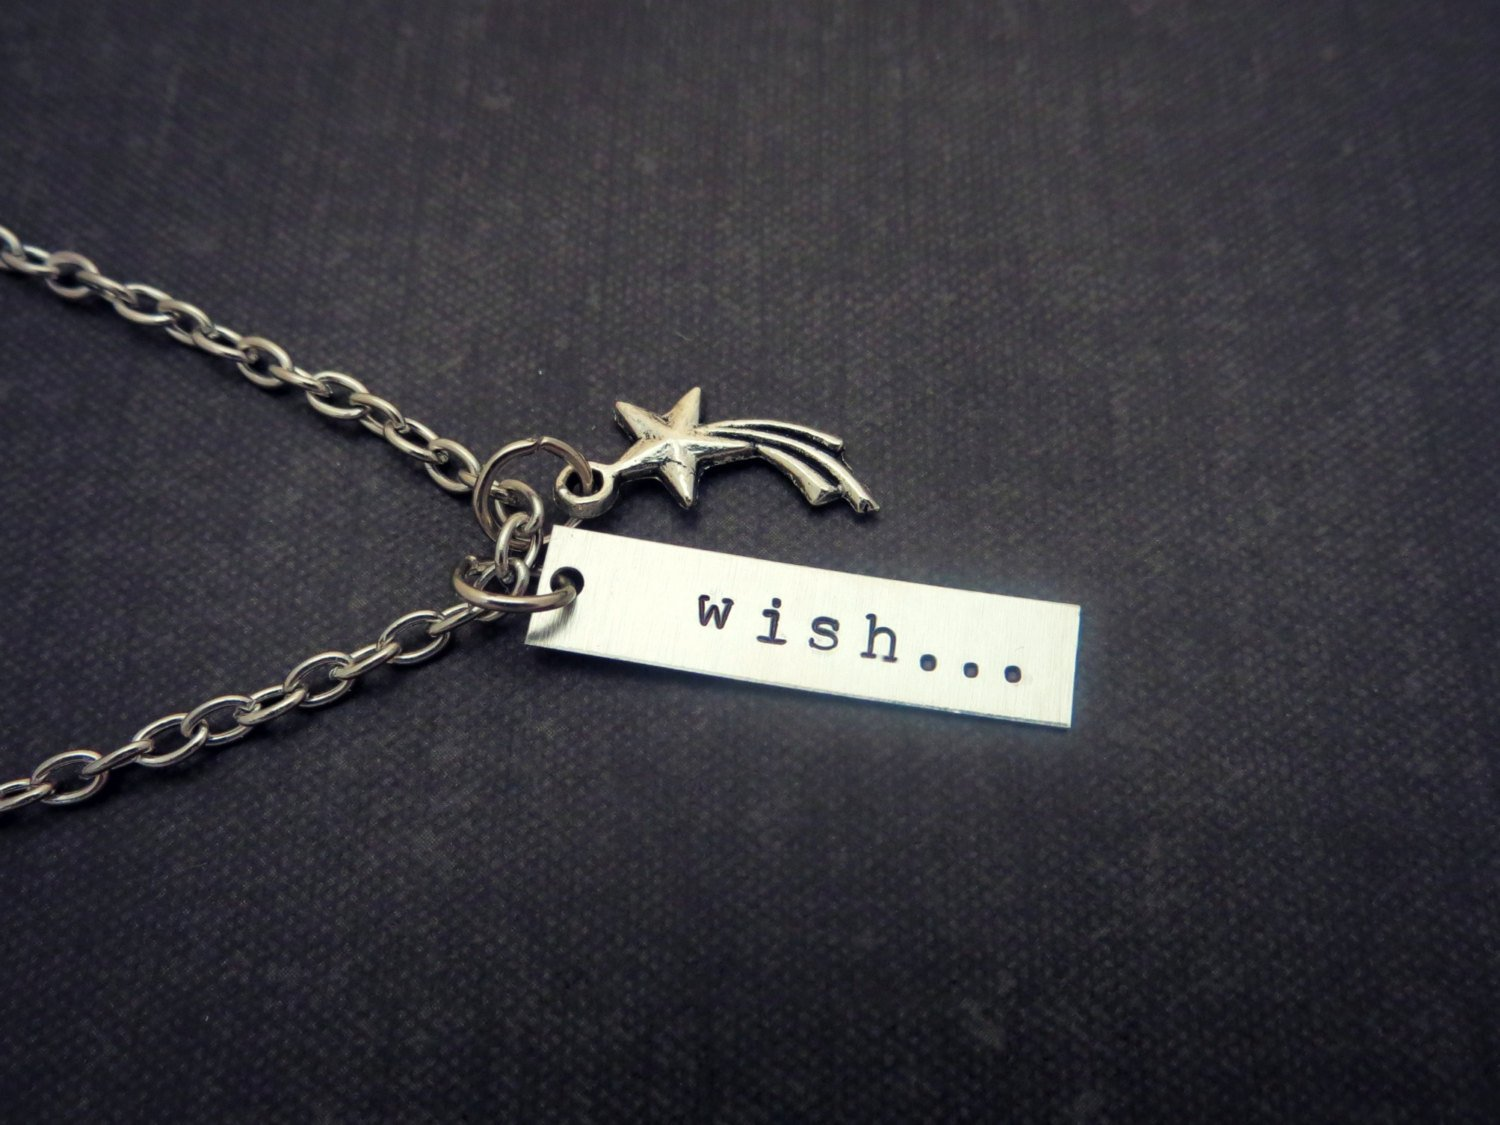 Wish Hand Stamped Necklace With Shooting Star Charm (Silver, 18 inches)